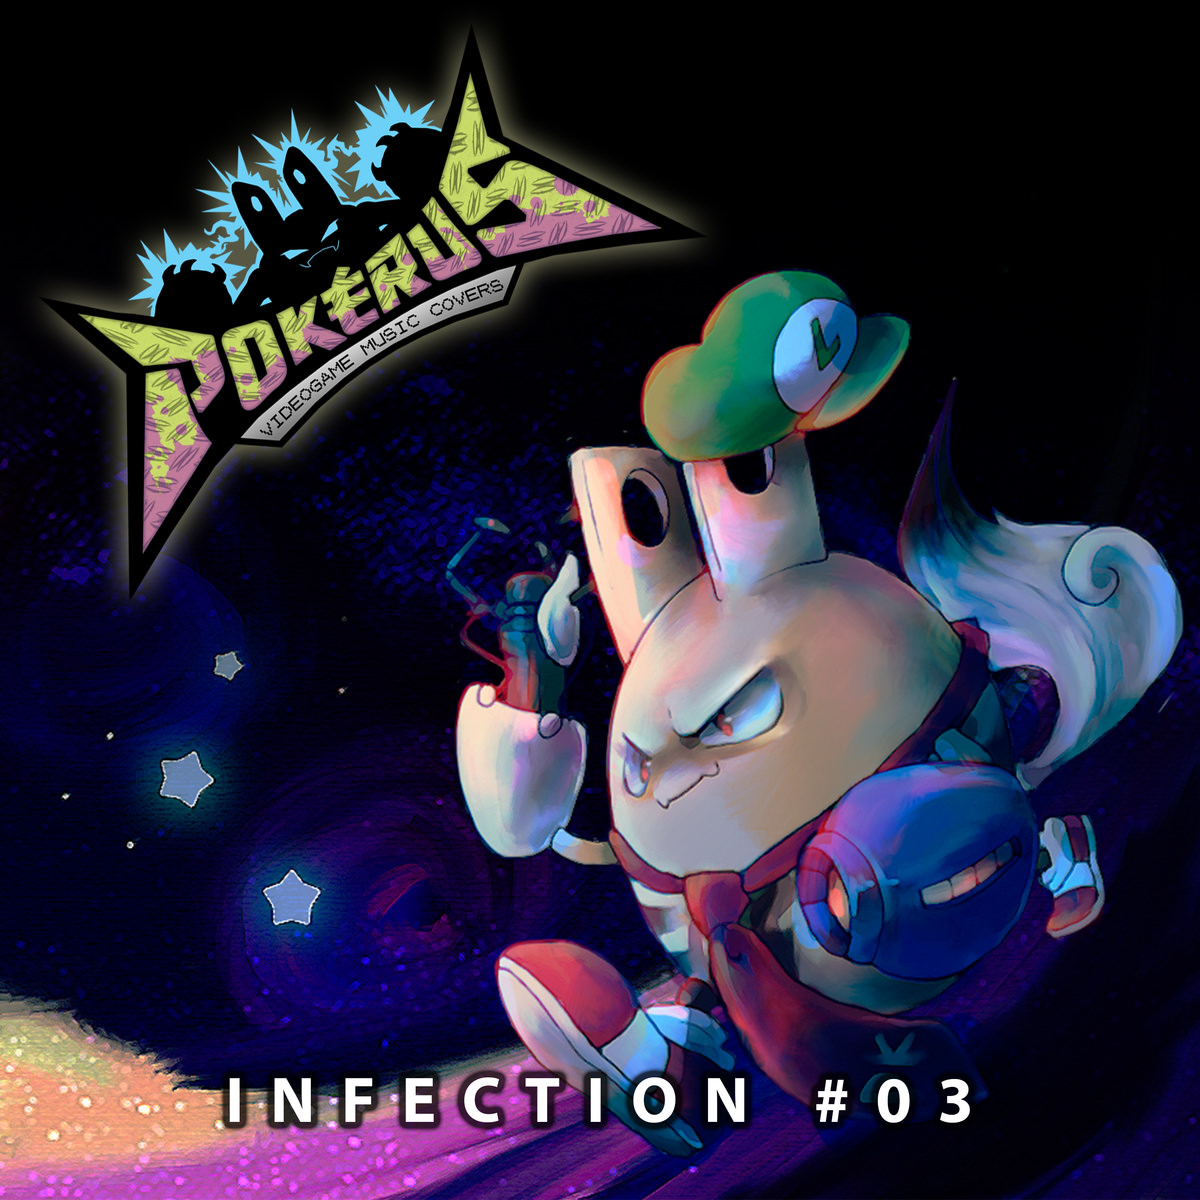 Pokerus-VGM-Infection-03